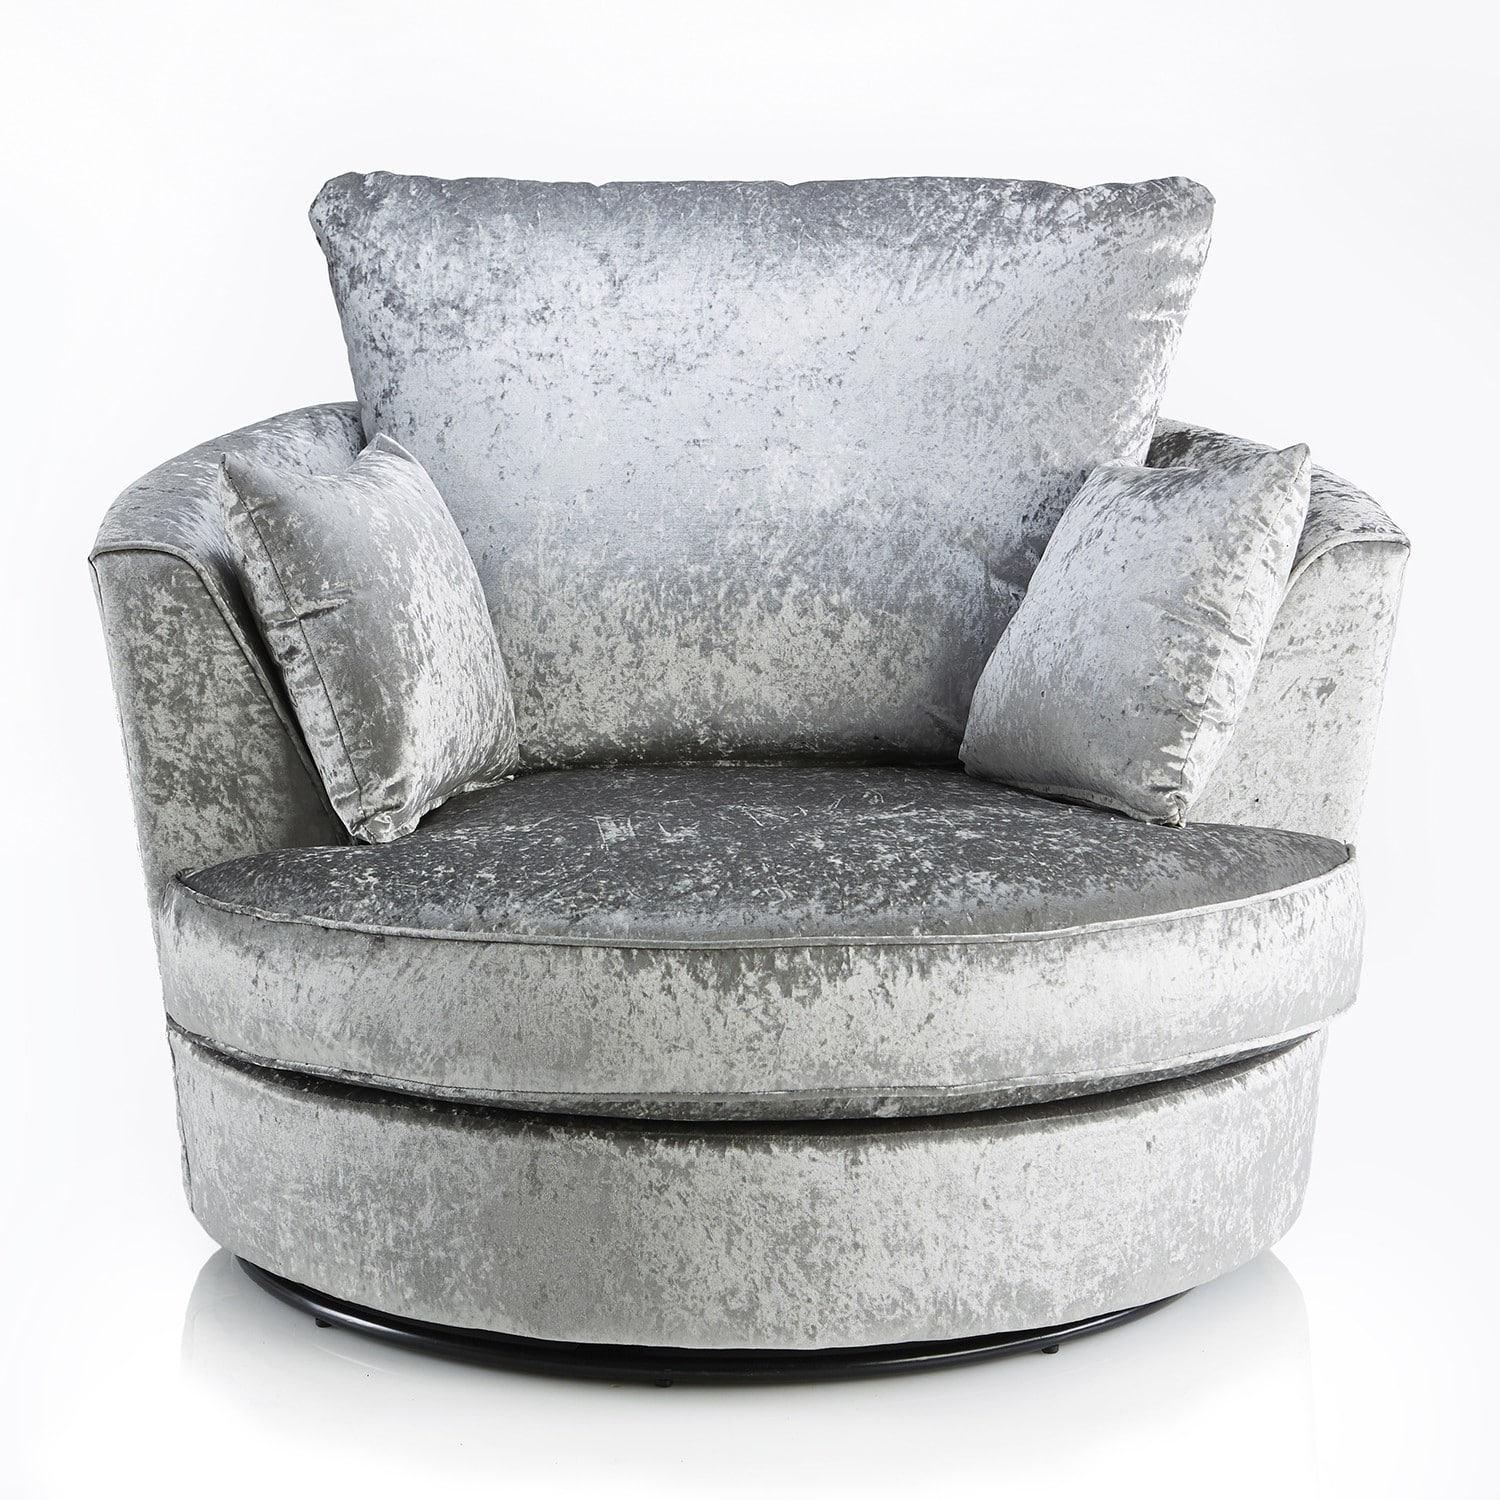 Crushed Velvet Furniture | Sofas, Beds, Chairs, Cushions Intended For Grey Swivel Chairs (View 5 of 20)